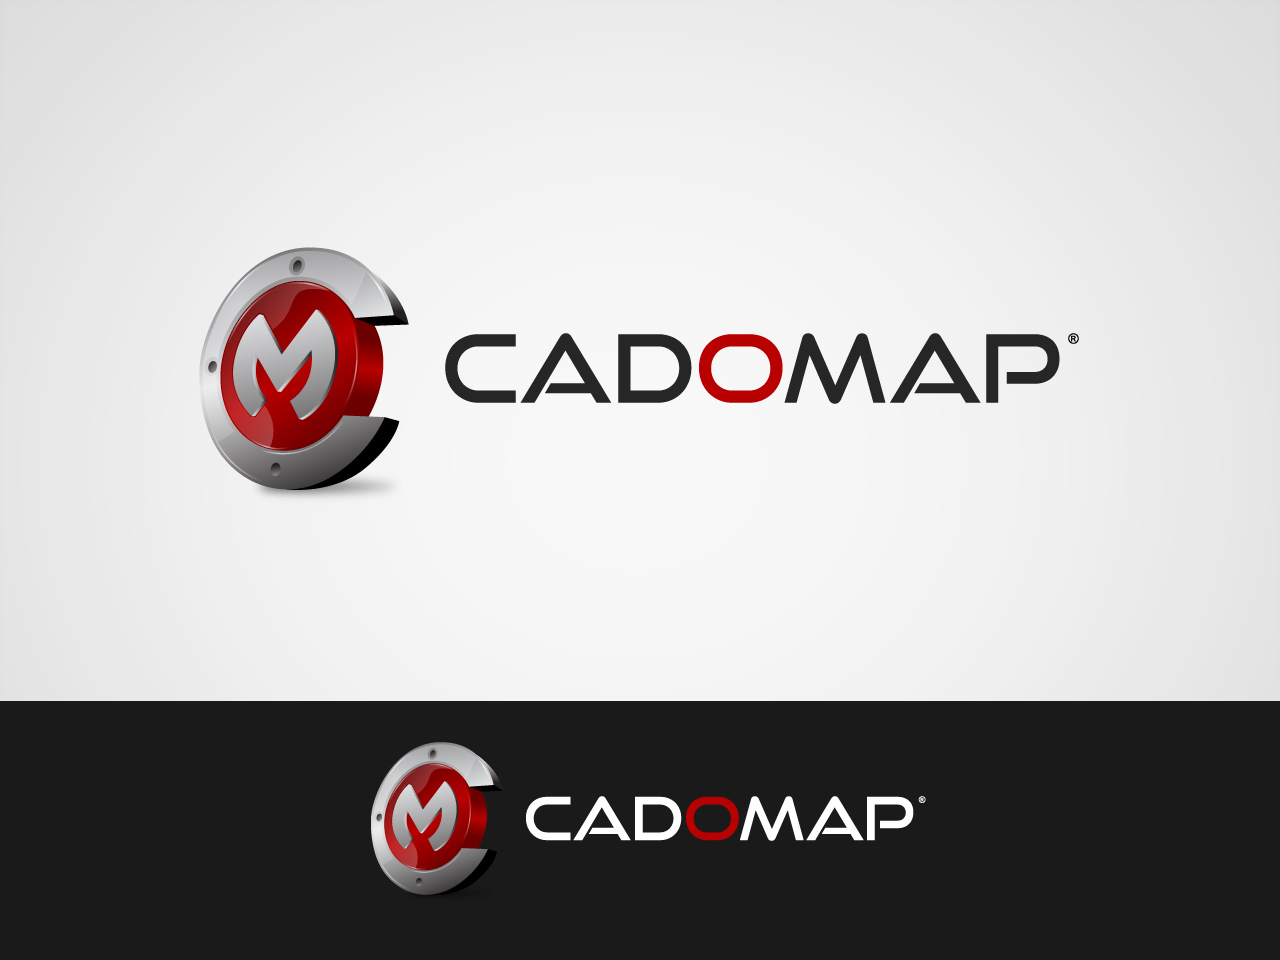 Logo Design by jpbituin - Entry No. 96 in the Logo Design Contest Captivating Logo Design for CadOMap software product.